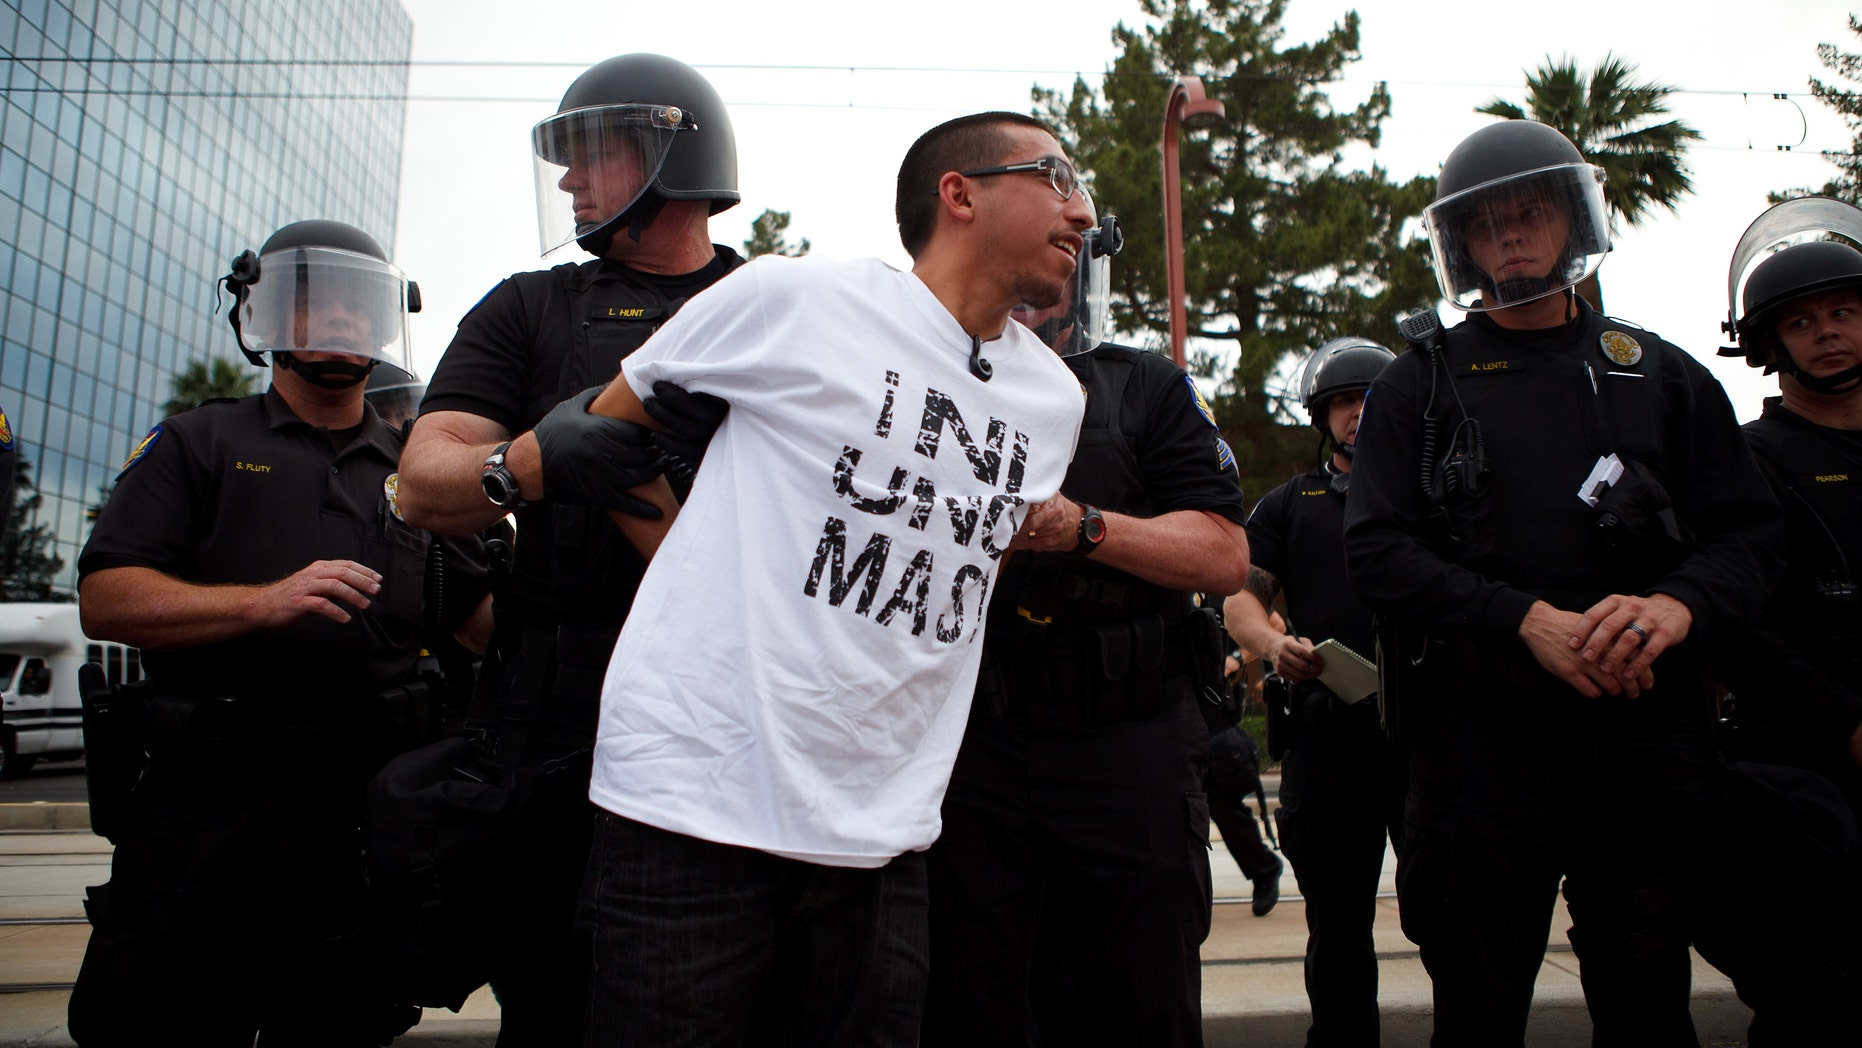 A protester opposed to SB 1070 is taken into custody by police officers April 25, 2012 in Phoenix, Arizona. (Photo by Jonathan Gibby/Getty Images)